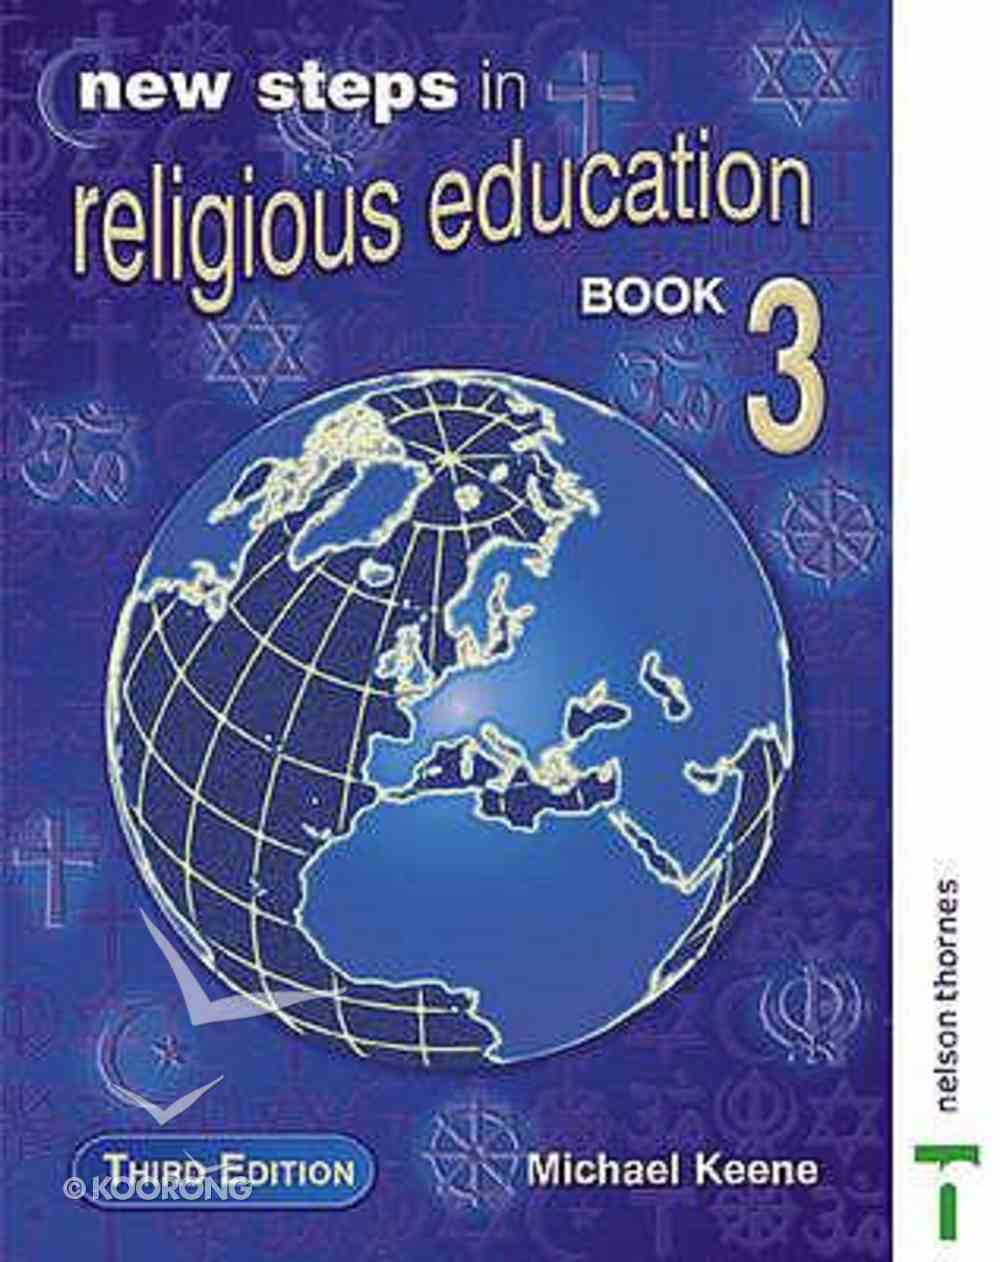 New Steps in Religious Education: Student Book 3 Paperback